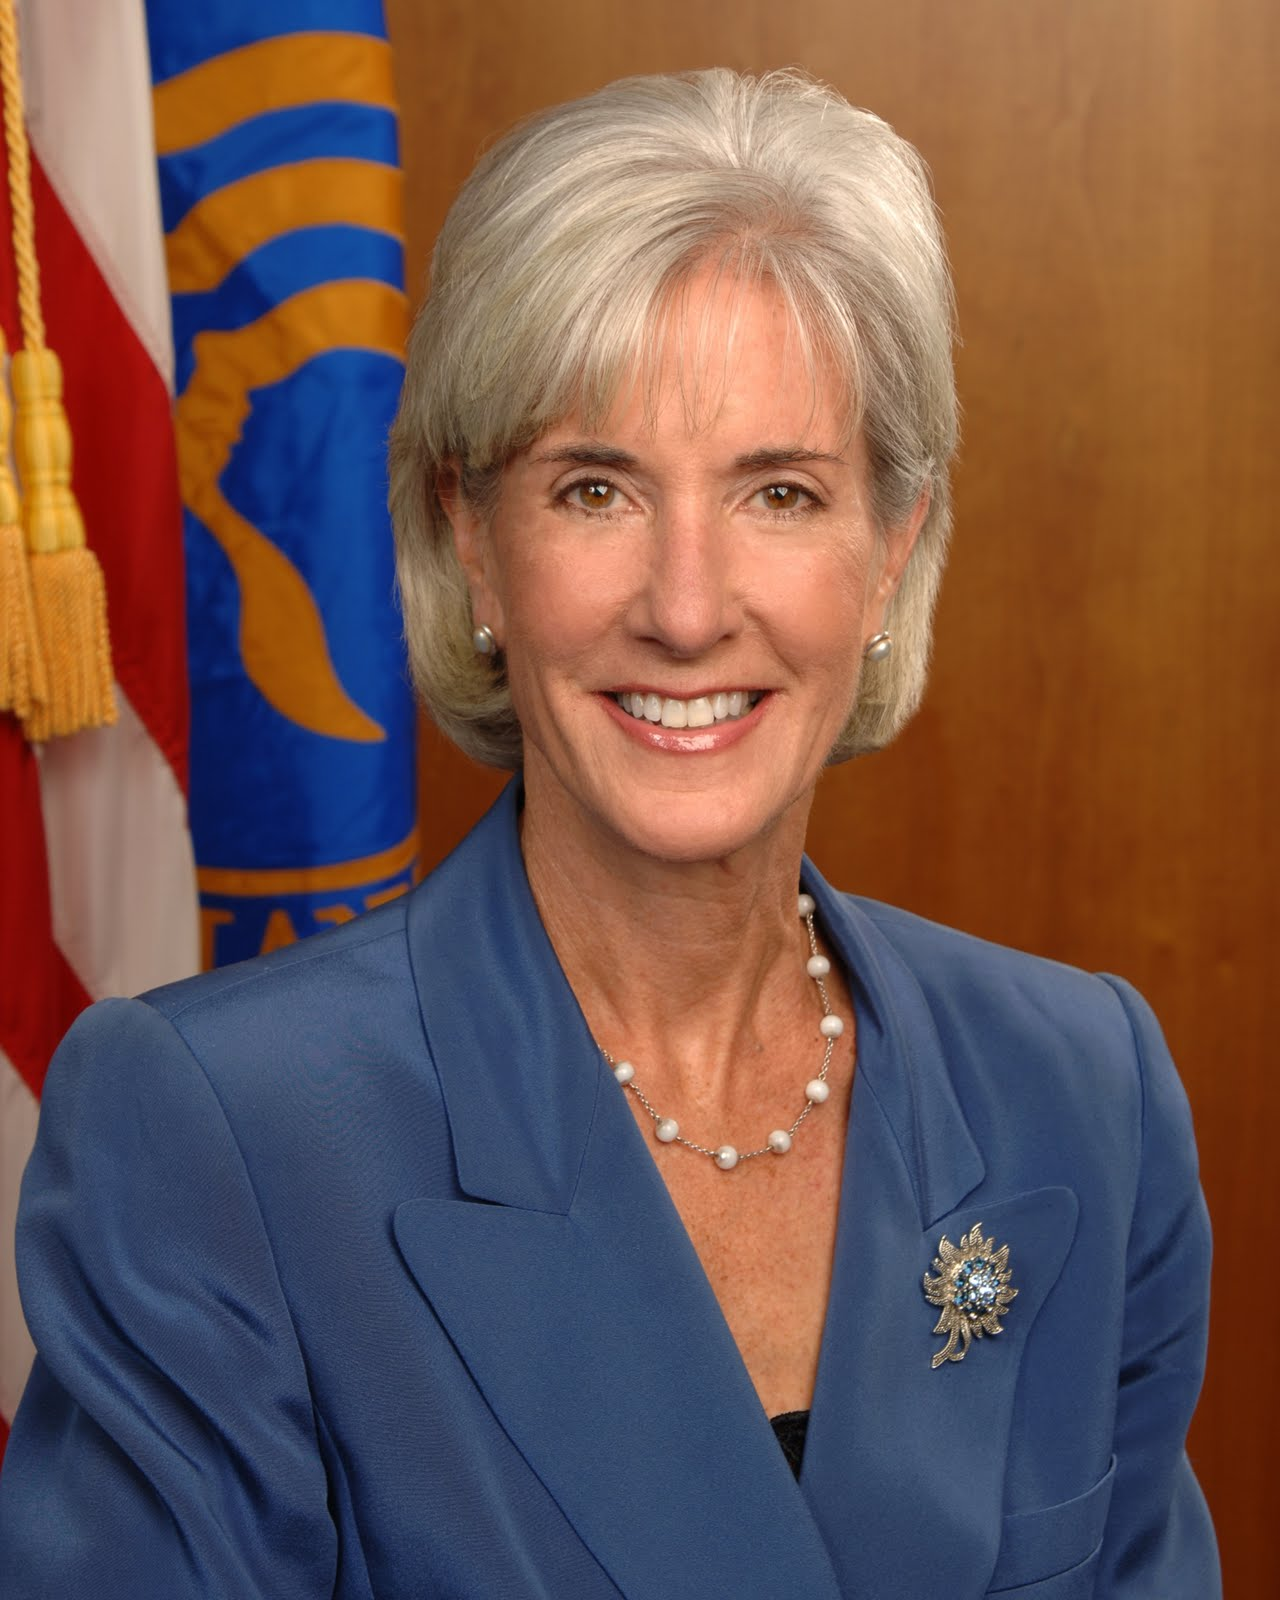 sebeliusofficialphoto The other day he stopped by the house unexpectedly while my son was ...